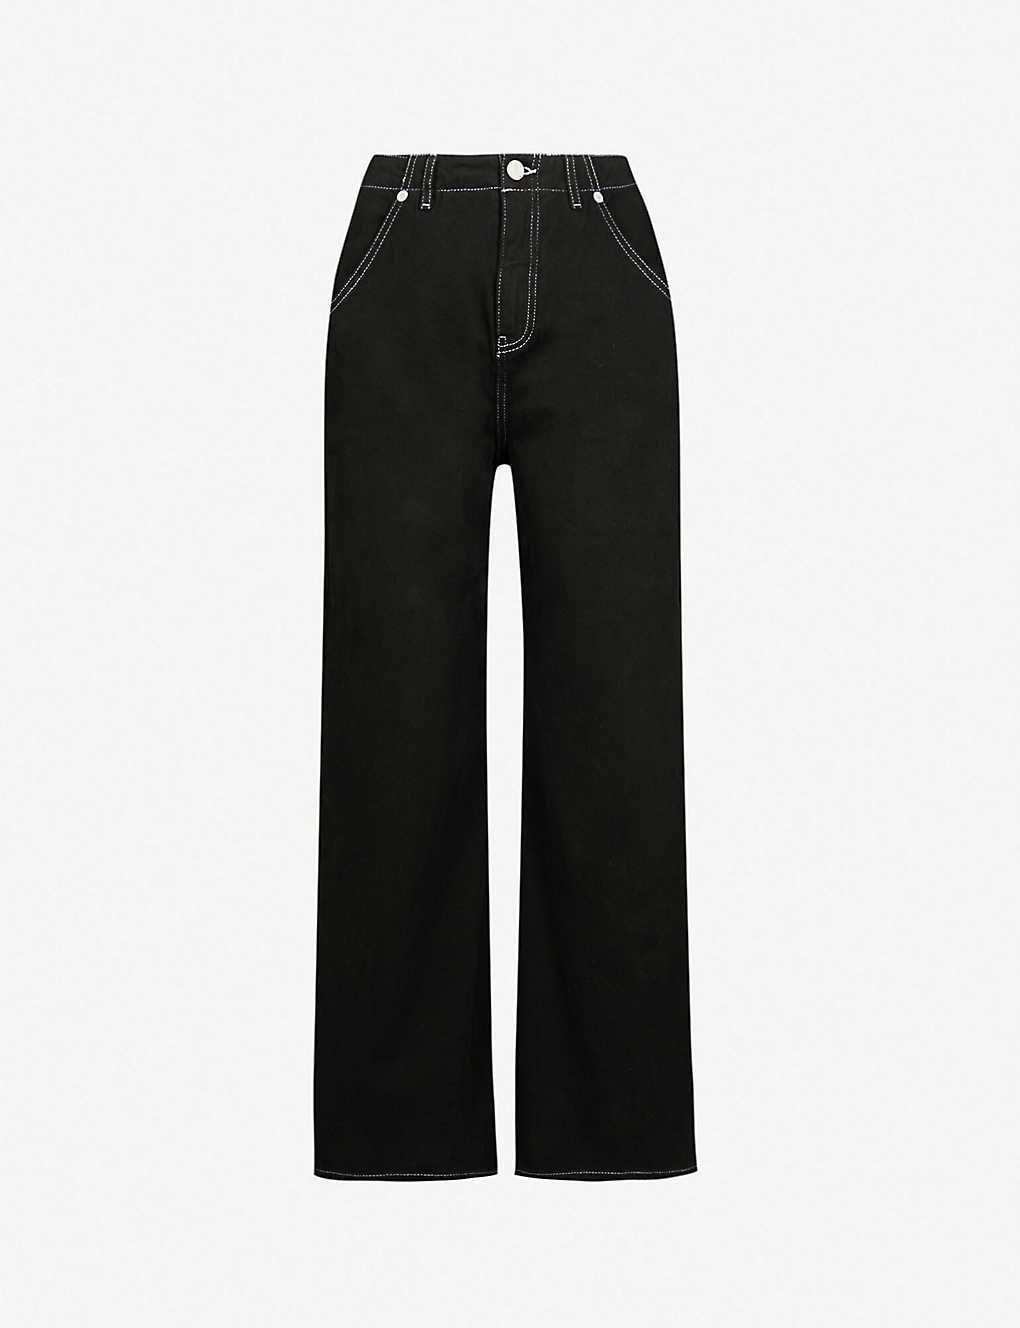 ad94861fb WHISTLES - Gabi wide-leg high-rise jeans | Selfridges.com